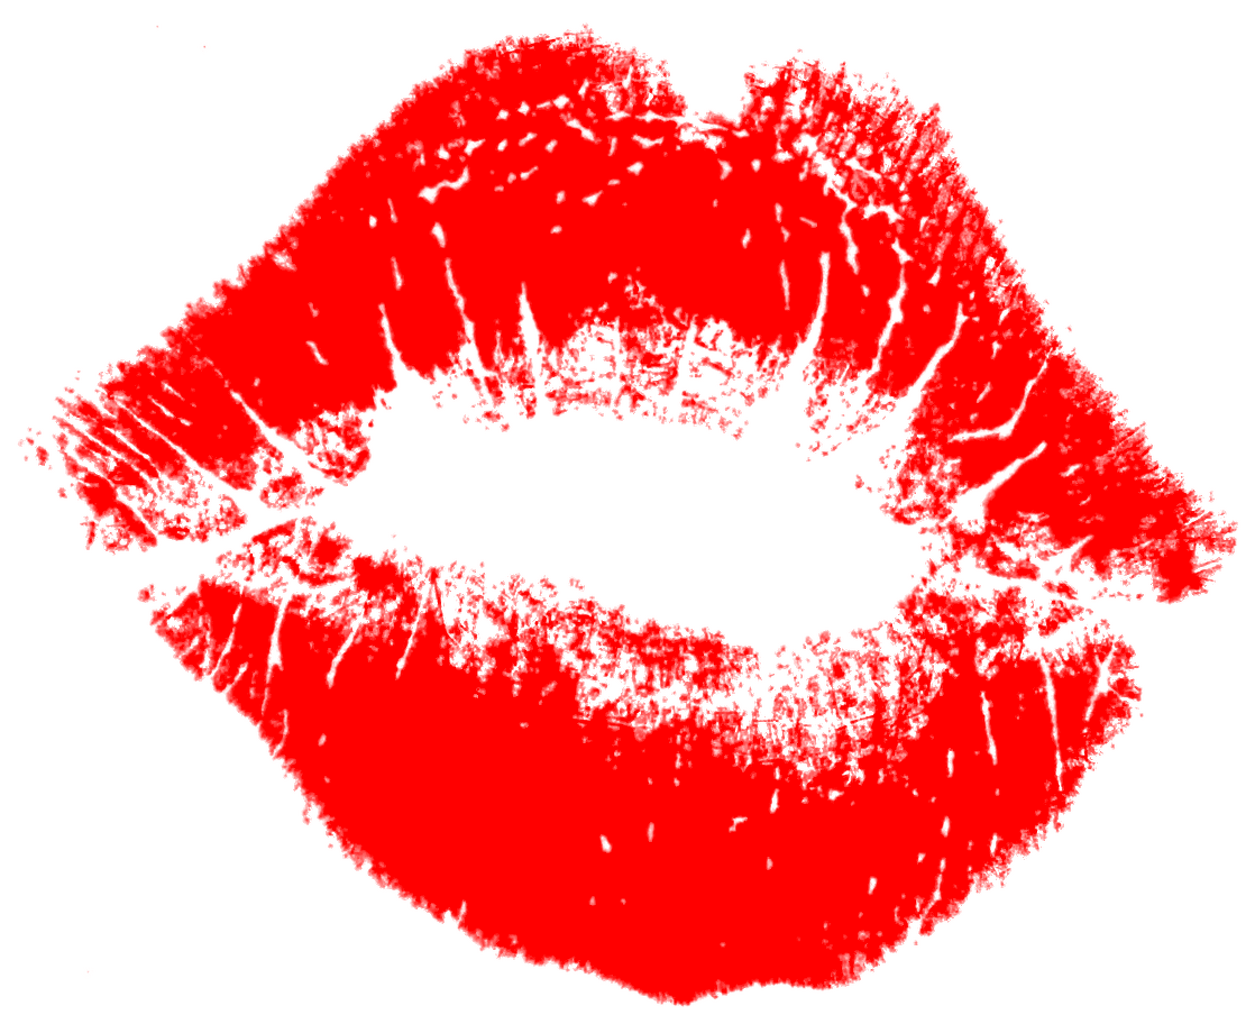 Lipstick kiss mark png. Best tattoo photo lips